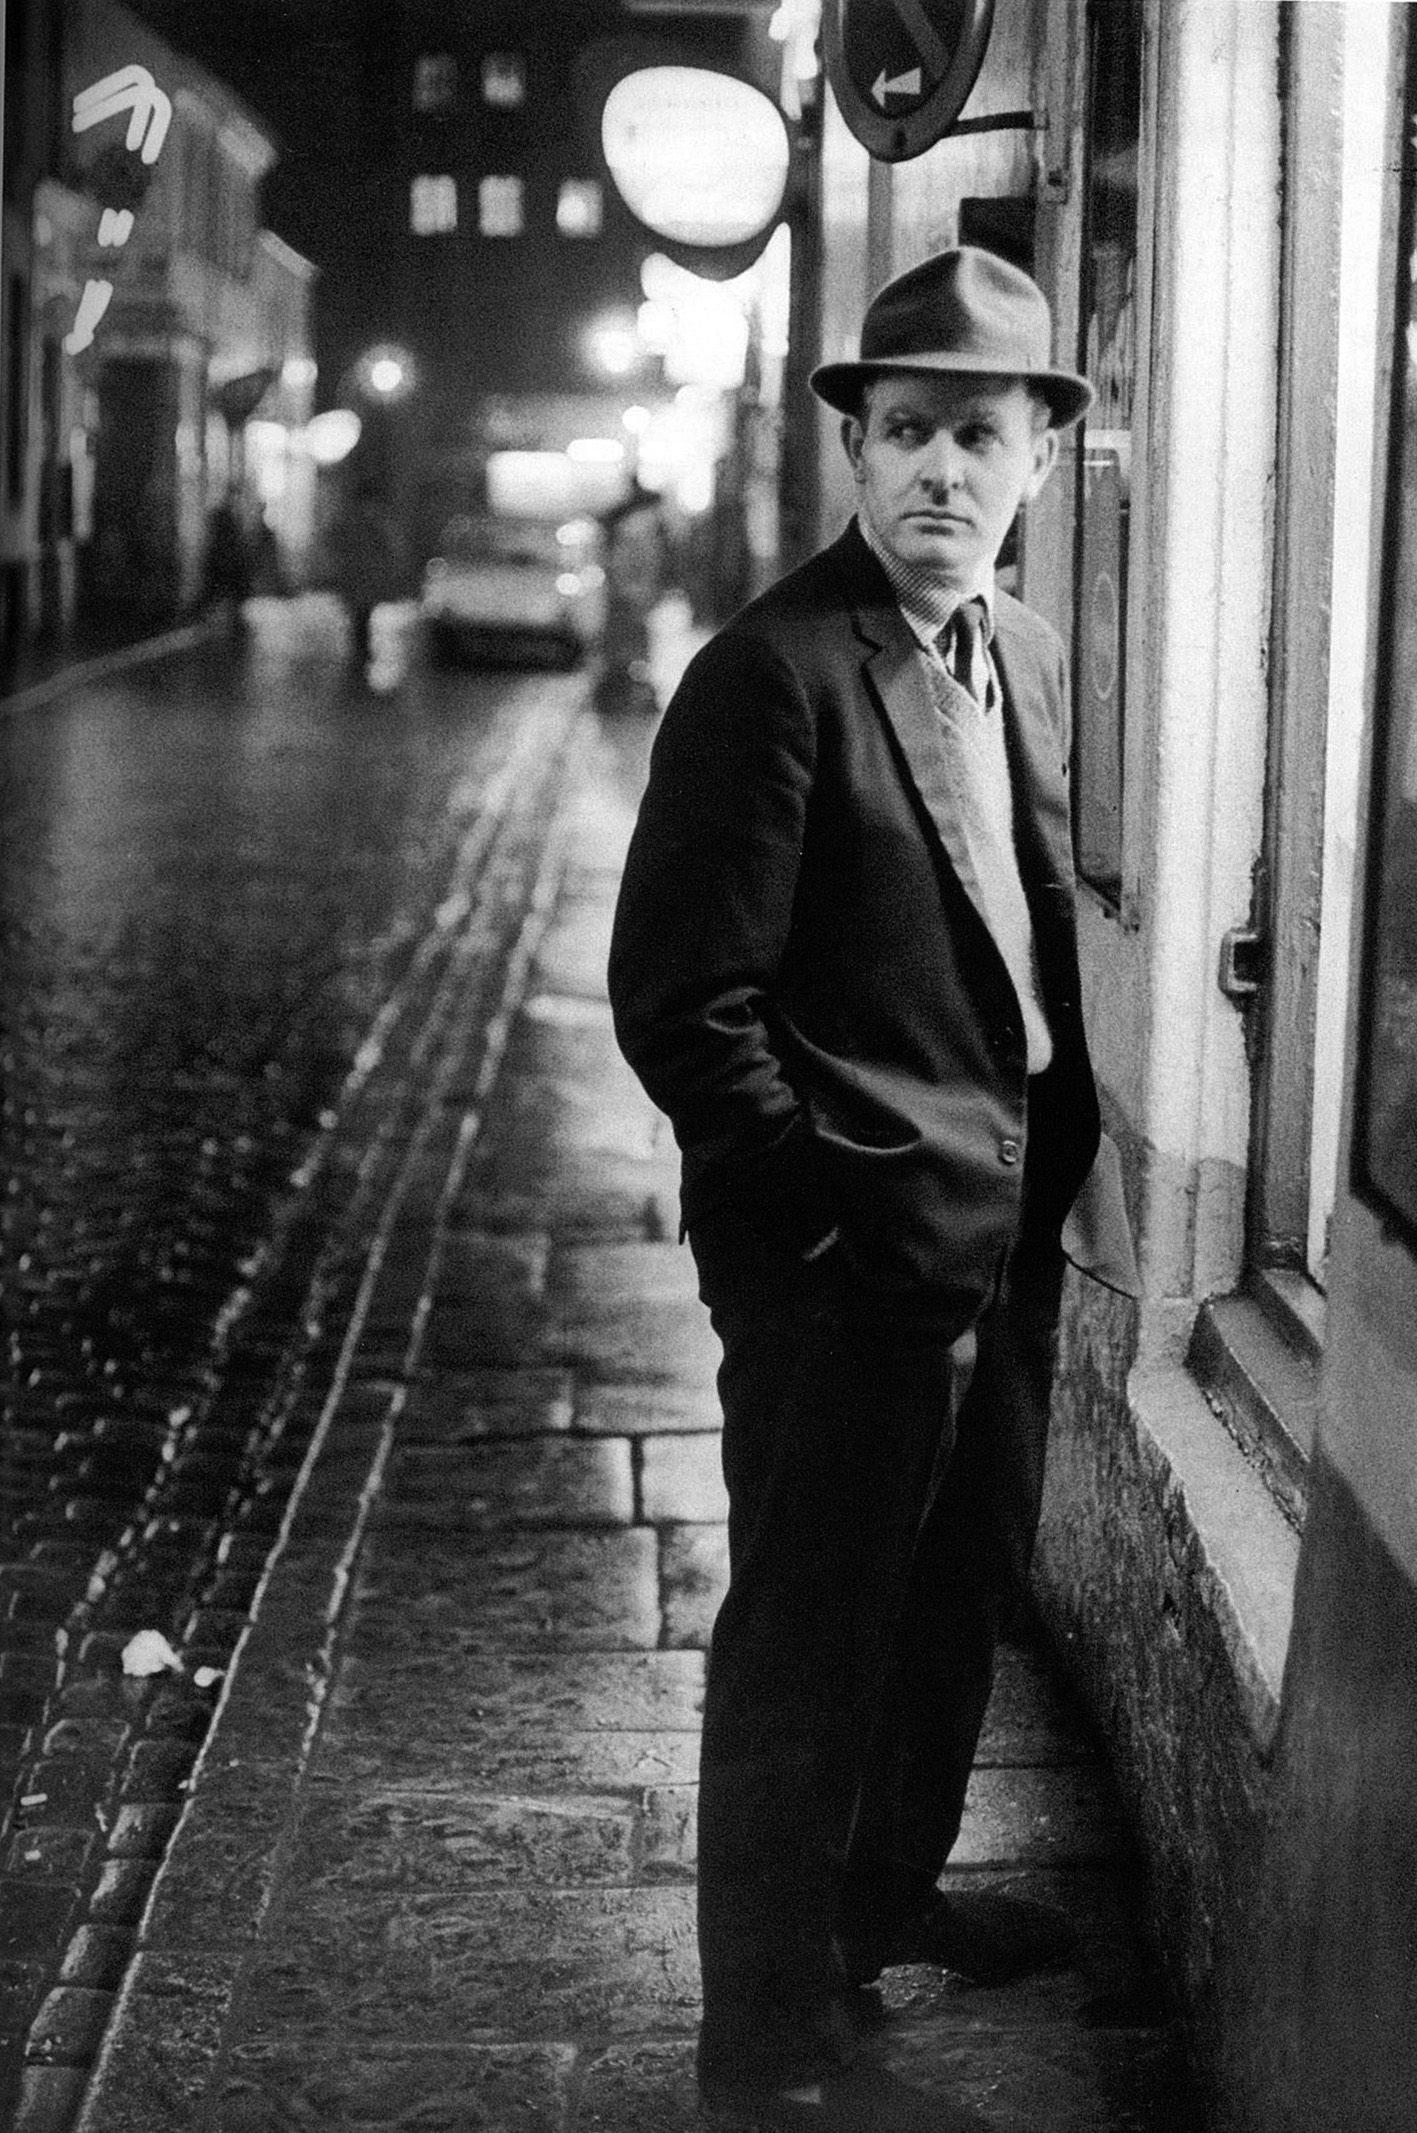 David Cornwell posing as a spy in London in 1964  for Life magazine shortly after being outed as the author  of The Spy Who Came in From the Cold  (Ralph Crane/The LIFE Picture Collection/Getty Images)